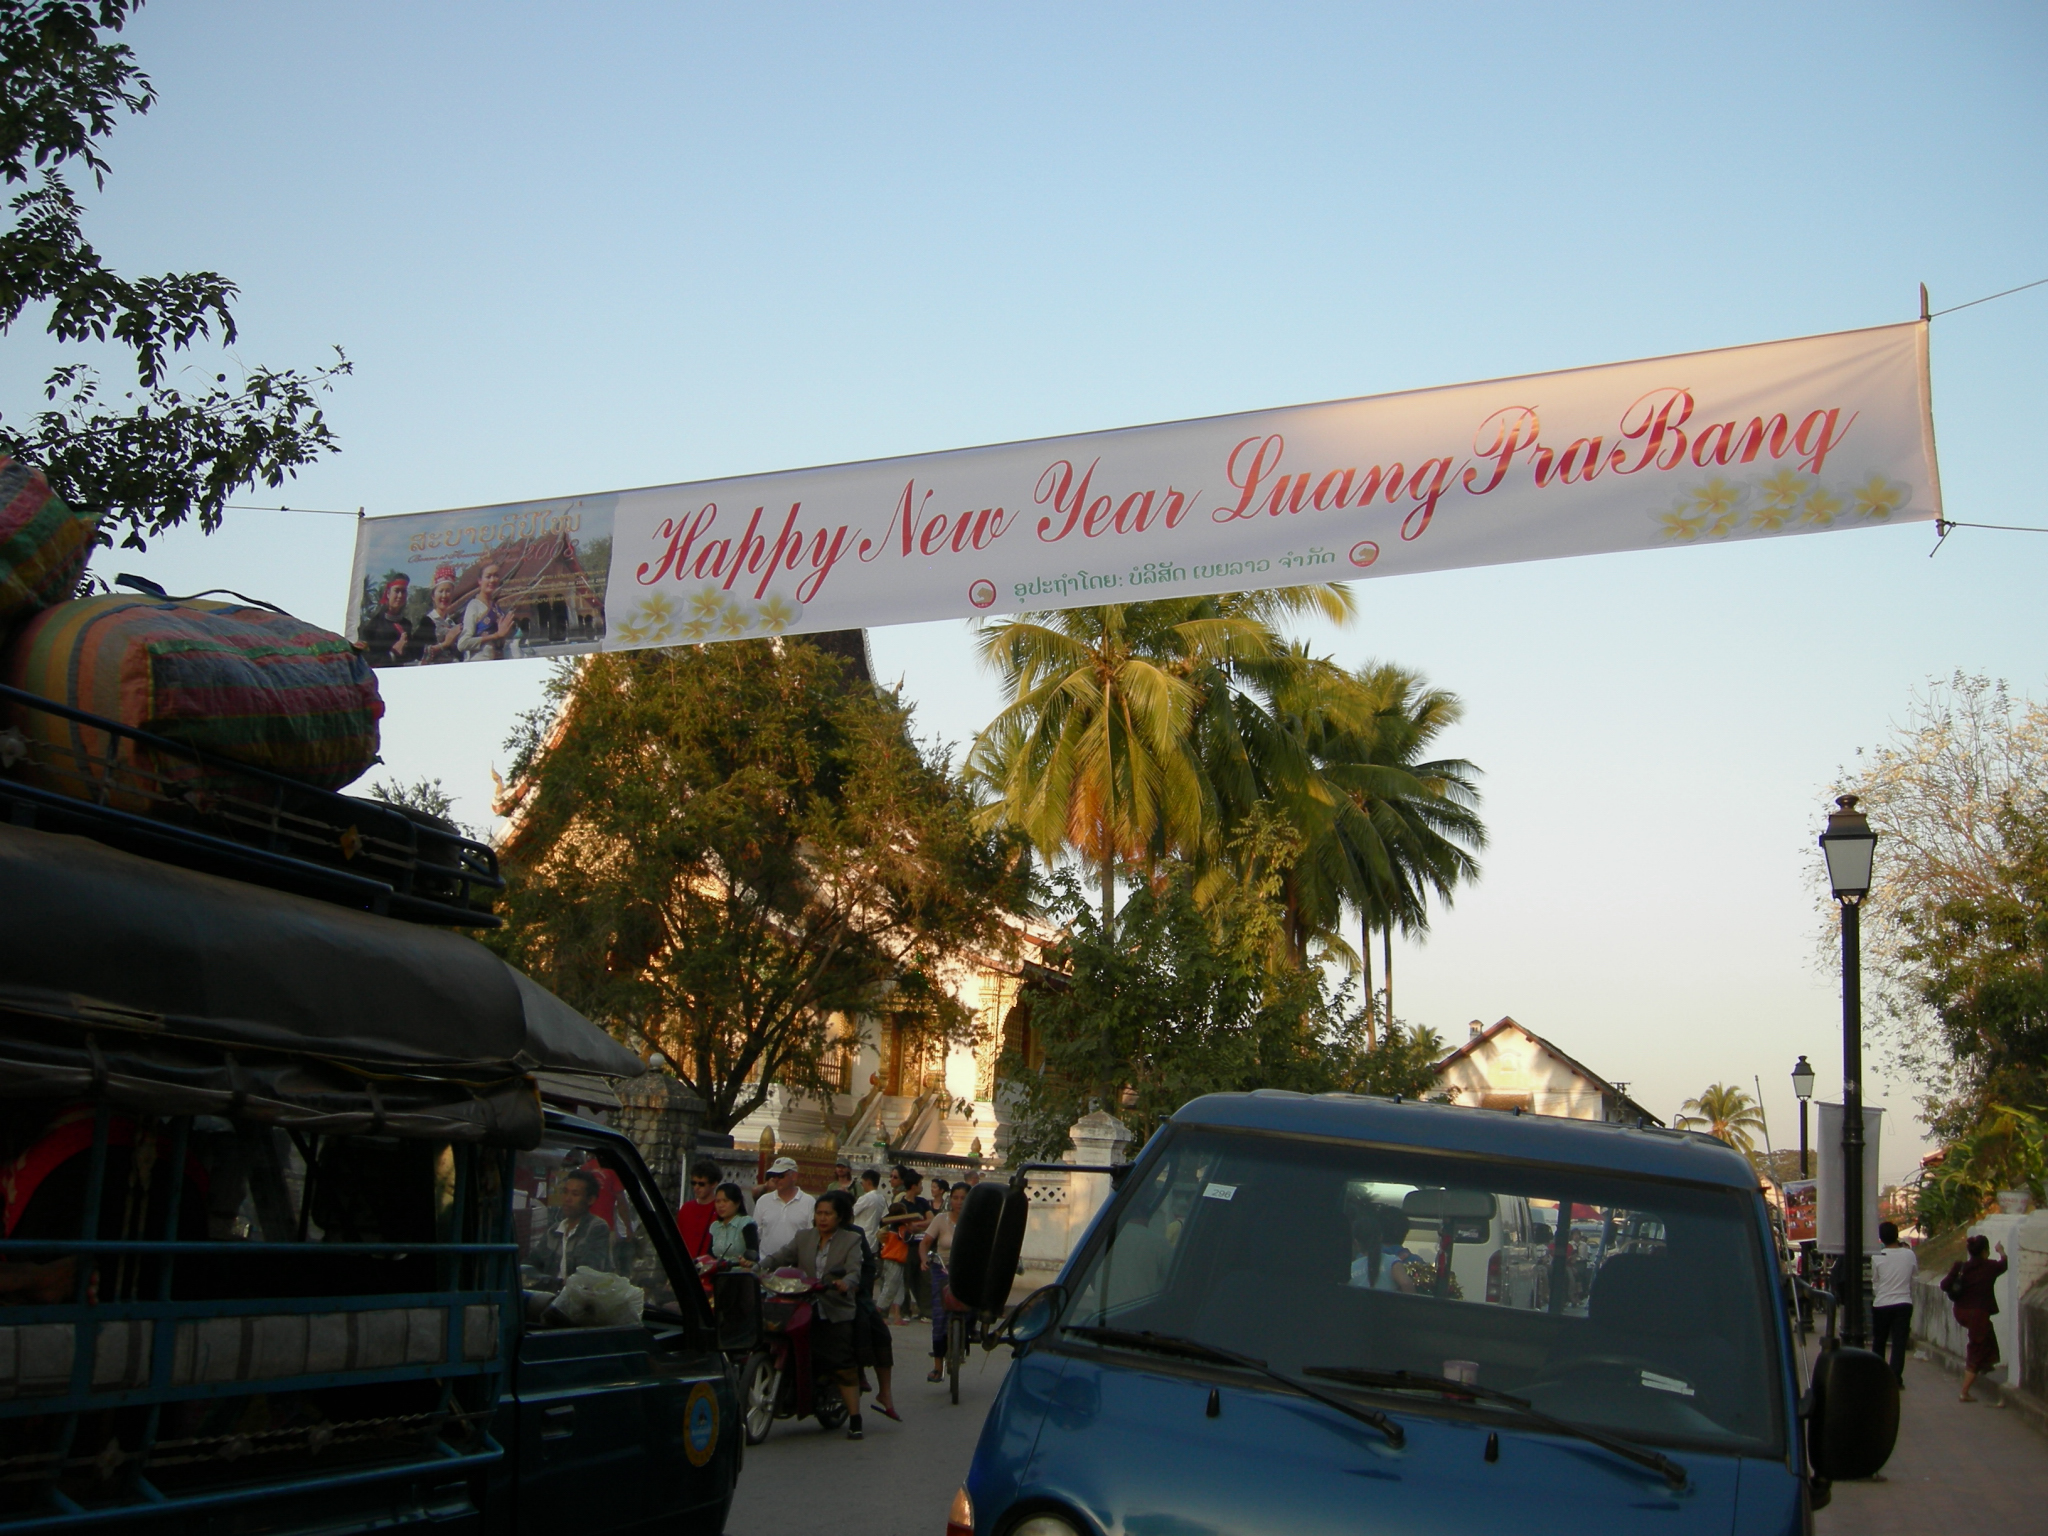 Happy new year in Luang Prabang